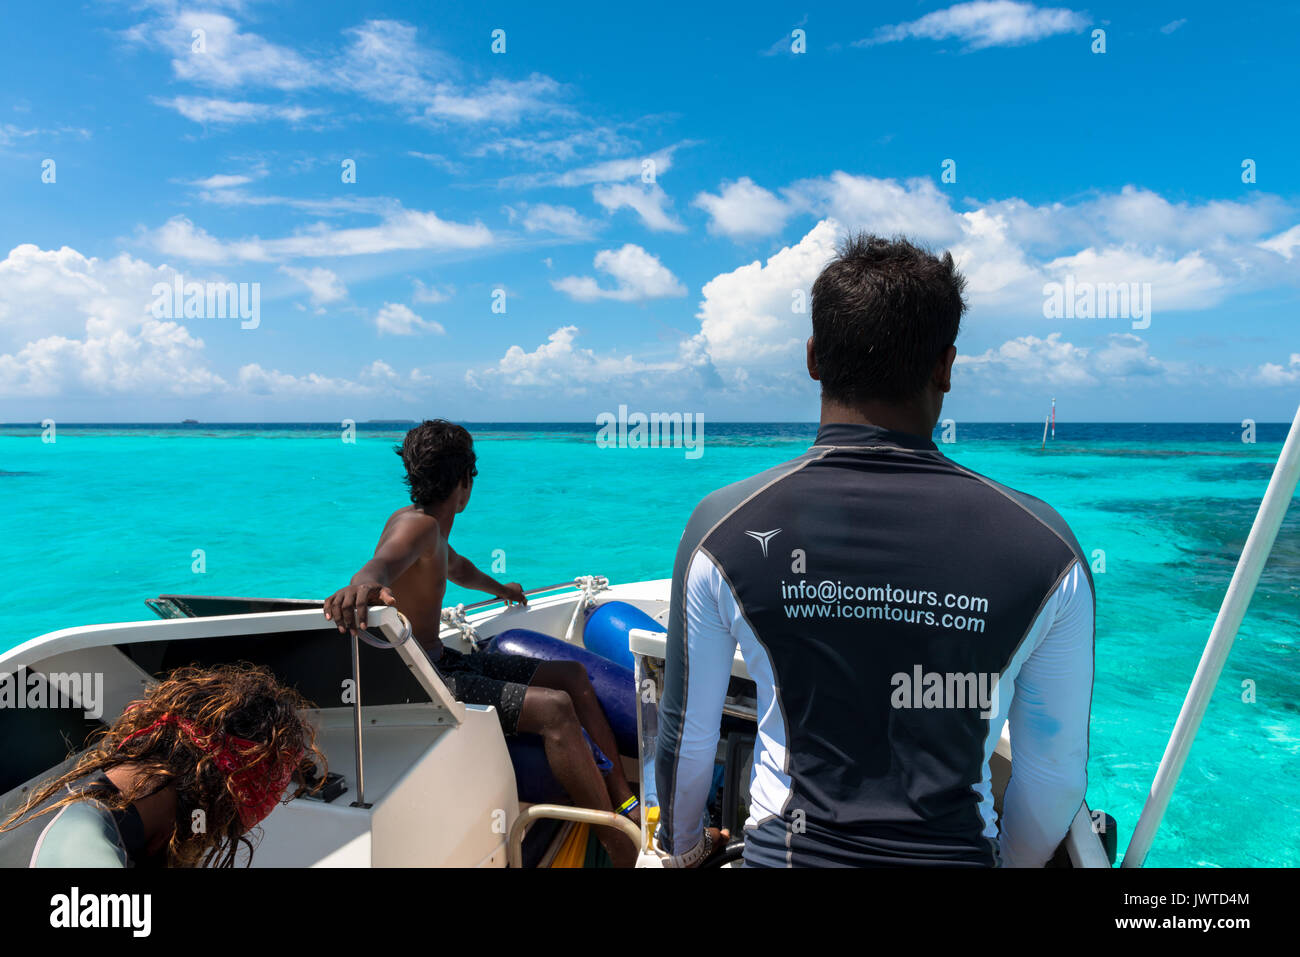 MAAFUSHI, MALDIVES - FEBRUARY 29, 2016: Wide angle picture of three local Maldives men guiding tourists over the turquoise water in Maldives. - Stock Image